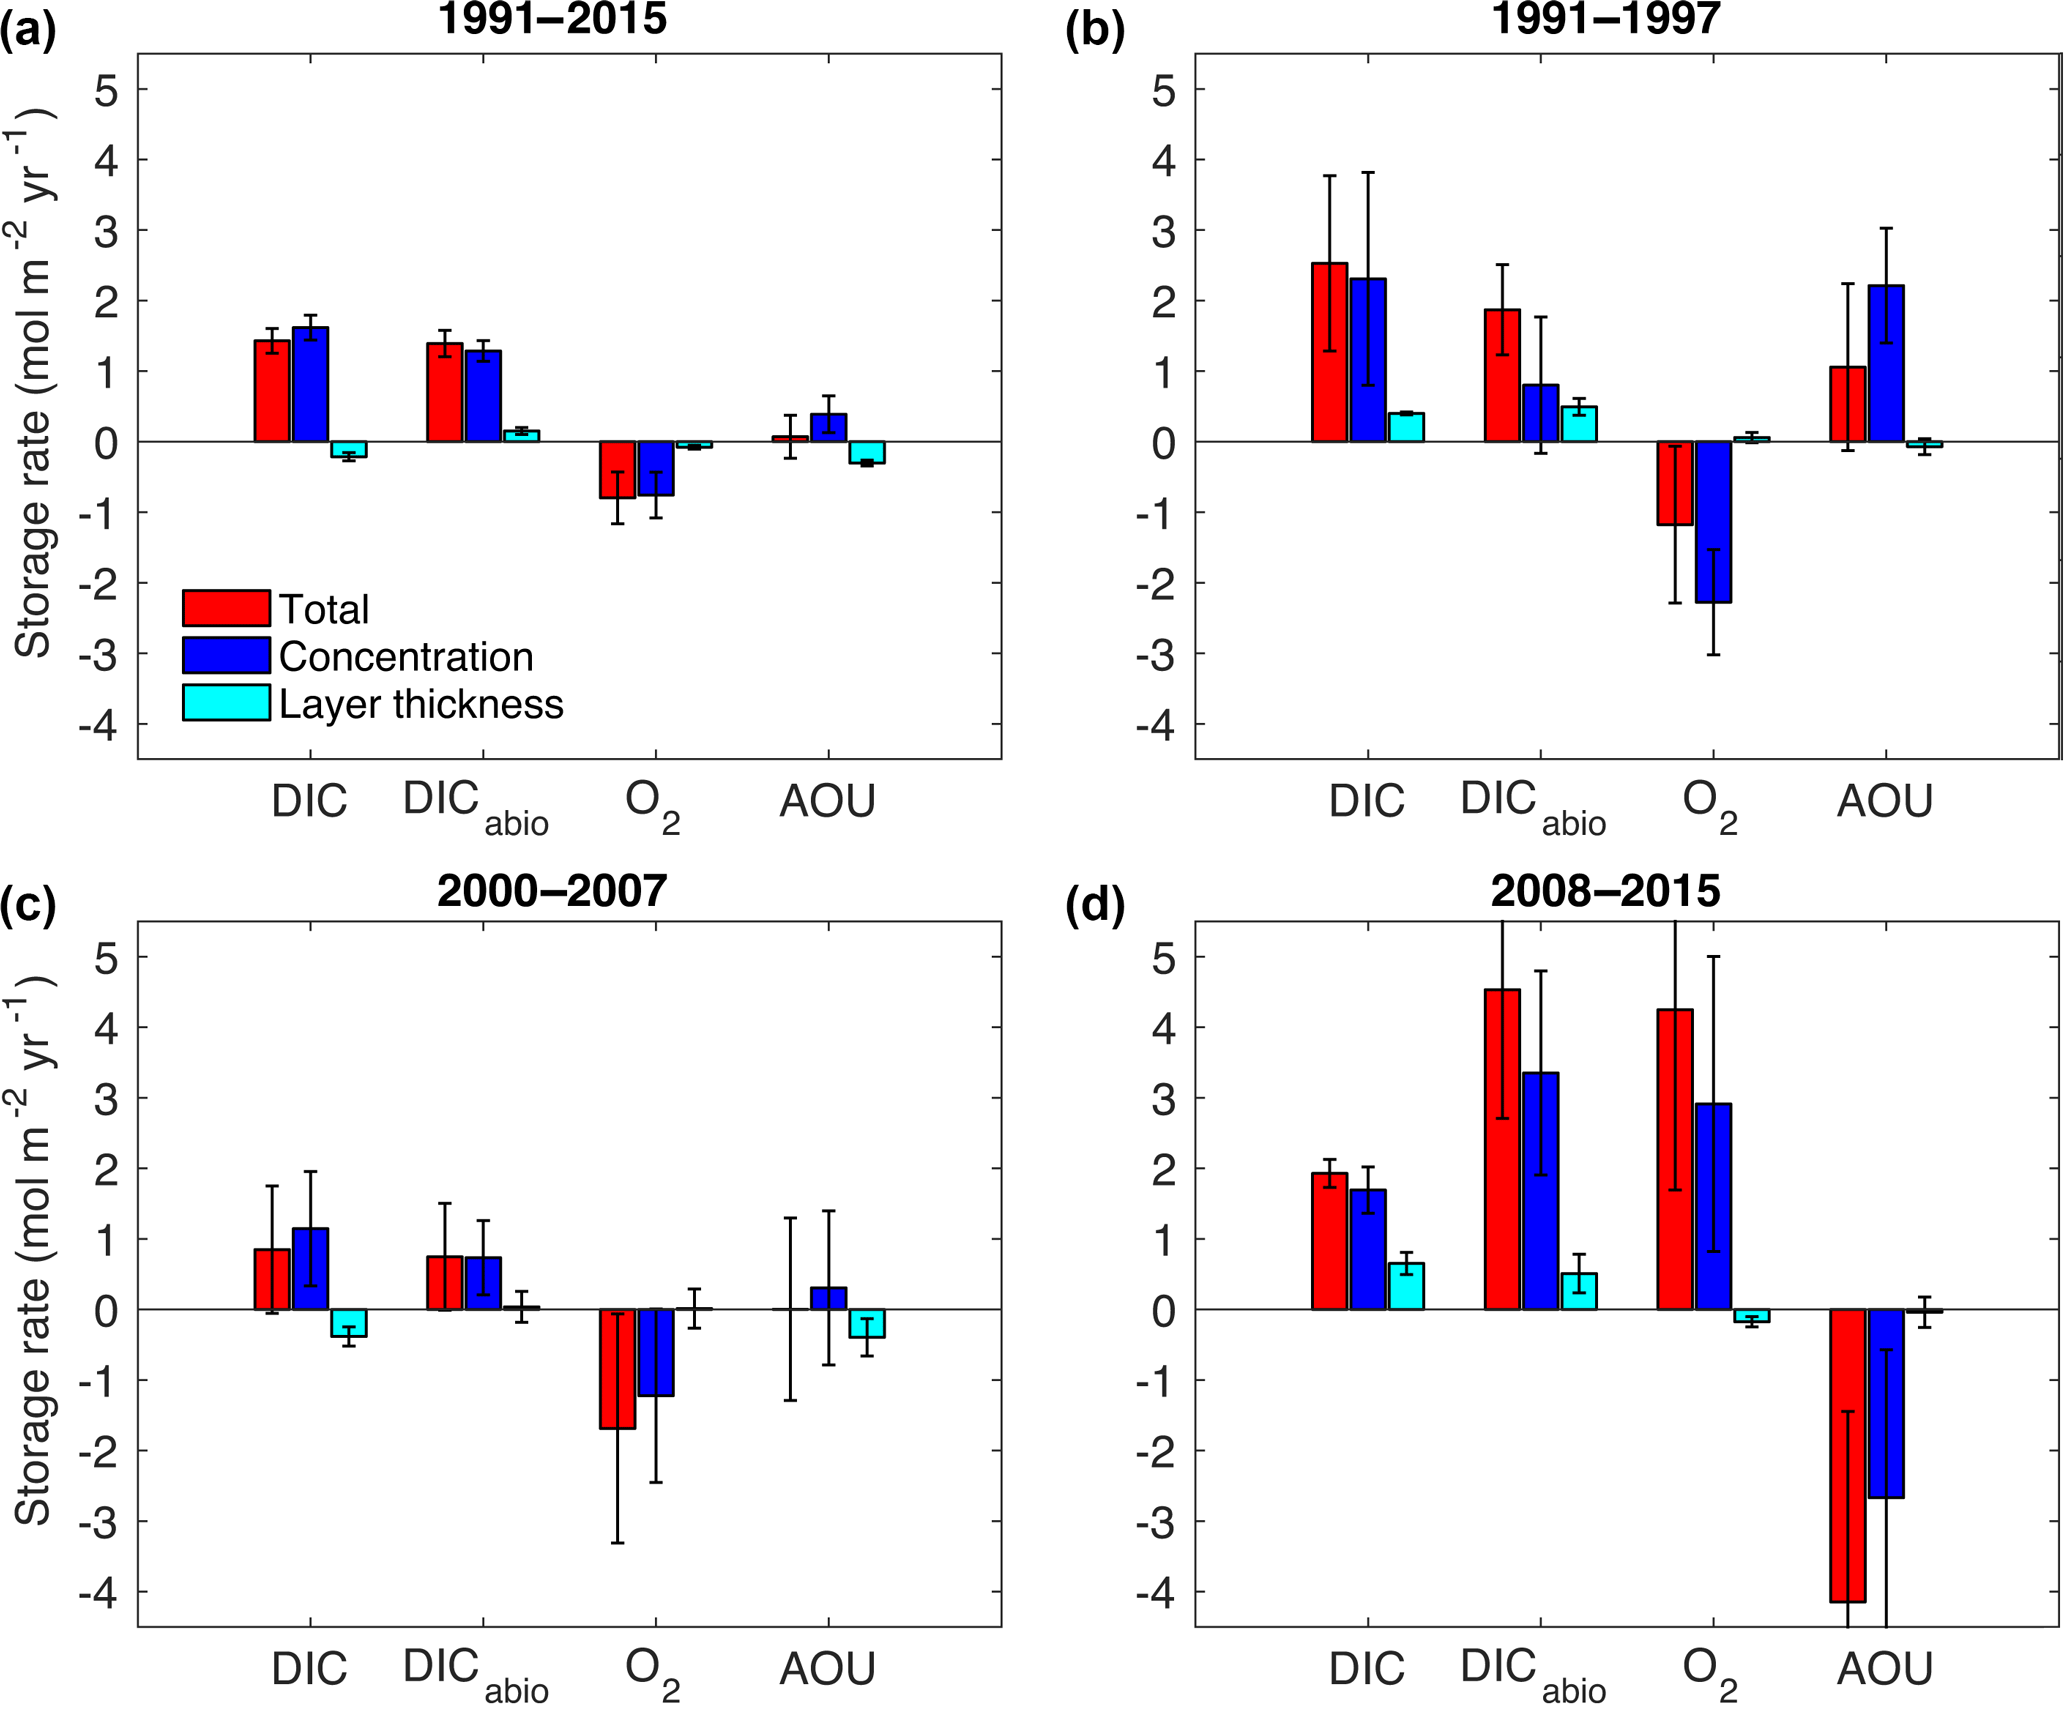 BG - Inorganic carbon and water masses in the Irminger Sea since 1991